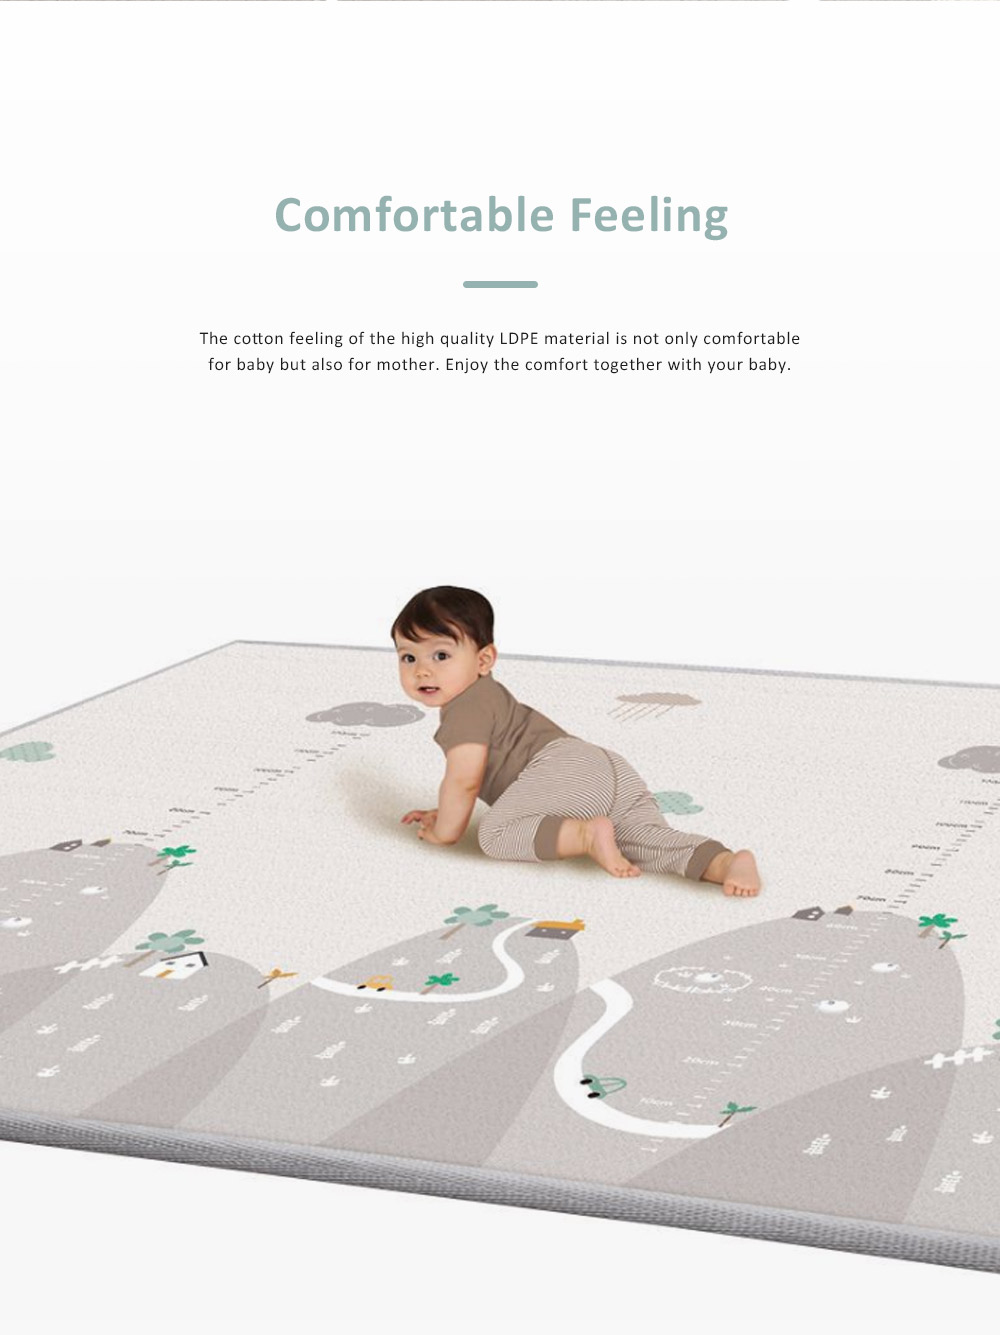 Double Sided Pyramid Textured Playing Mat for Baby, Nontoxic Odorless LDPE Material Crawling Carpet for Home Use 2